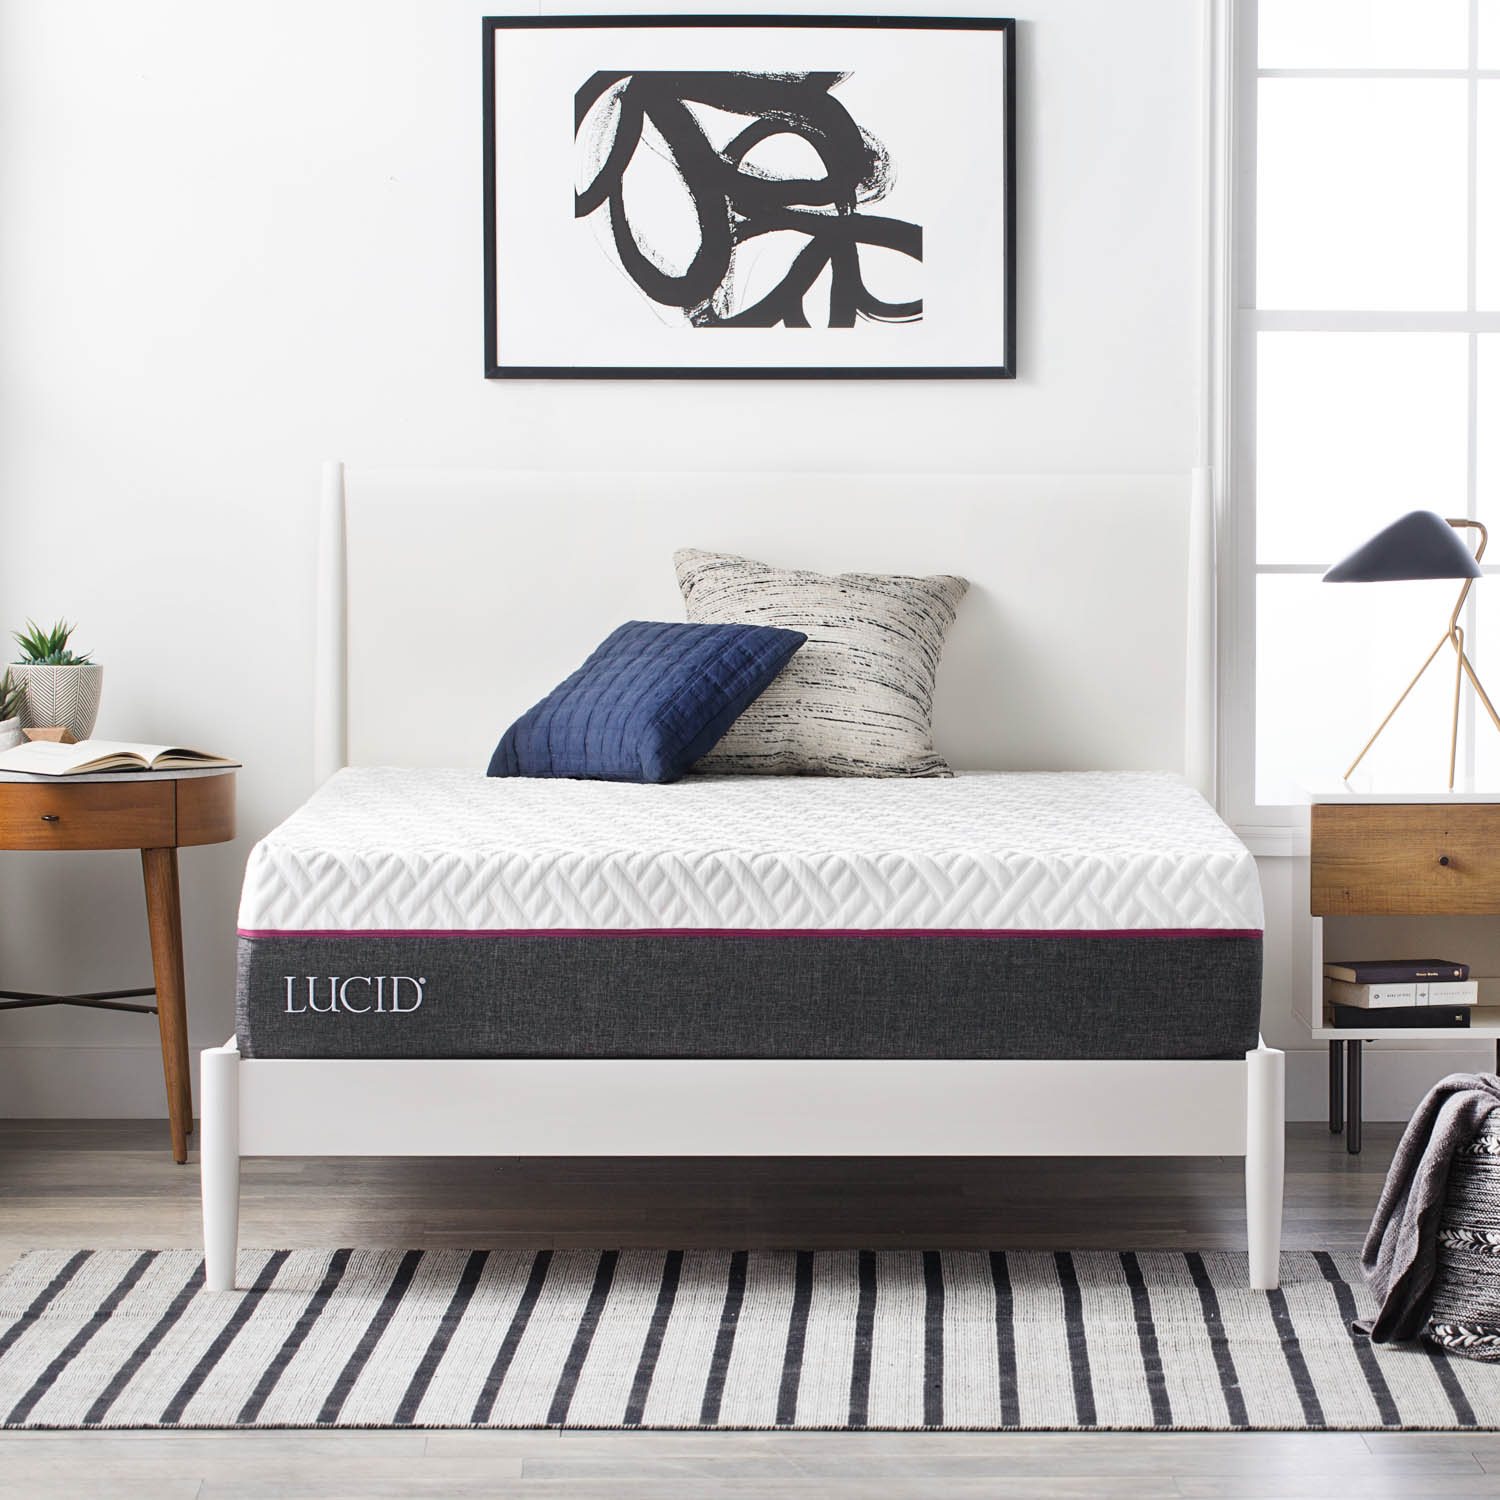 Lucid 13 Inch Prime Gel Memory Foam and Latex Hybrid Mattress